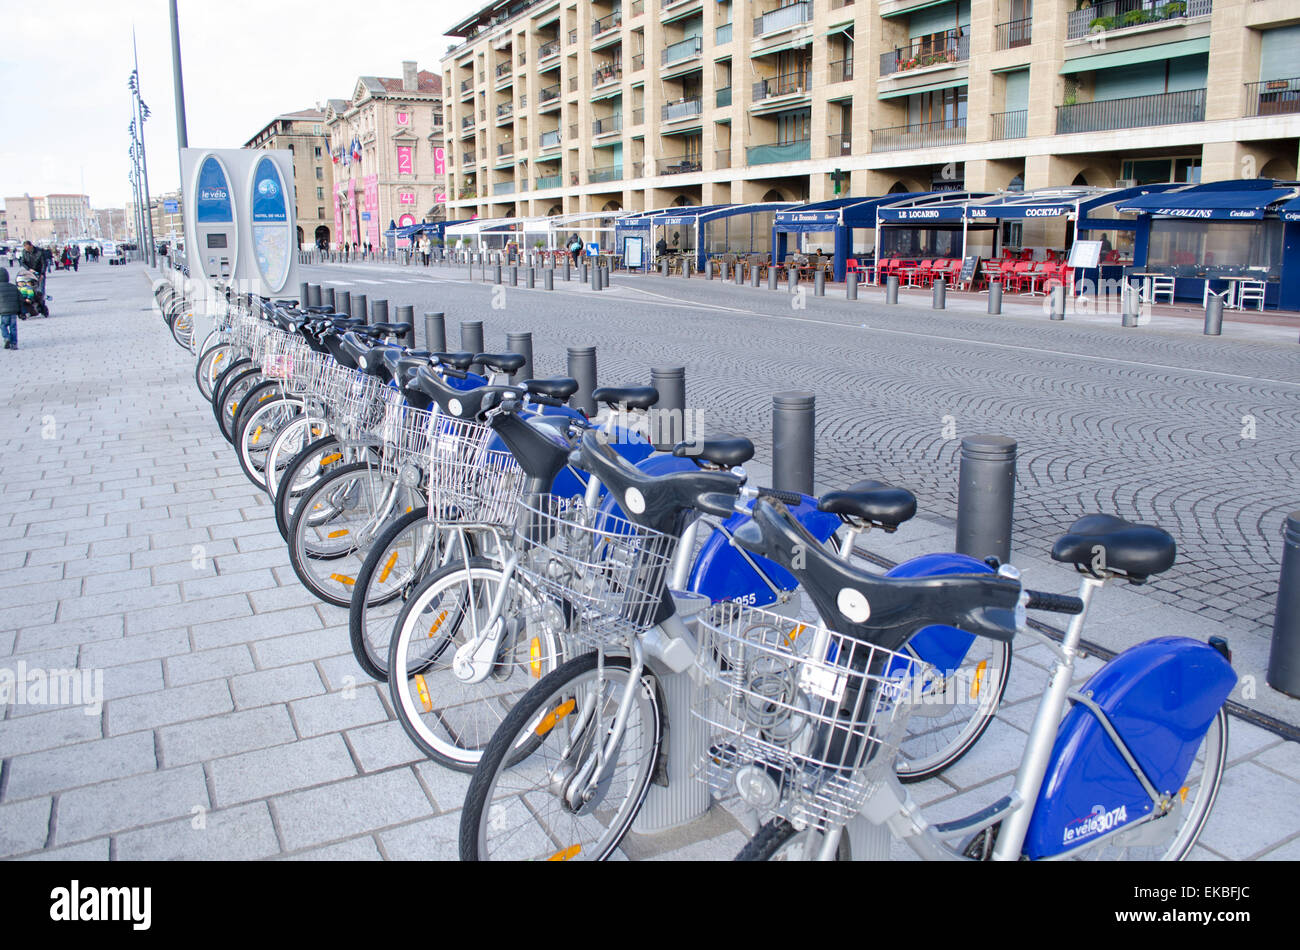 Bicycle hire in Marseille, Provence, France, Europe - Stock Image